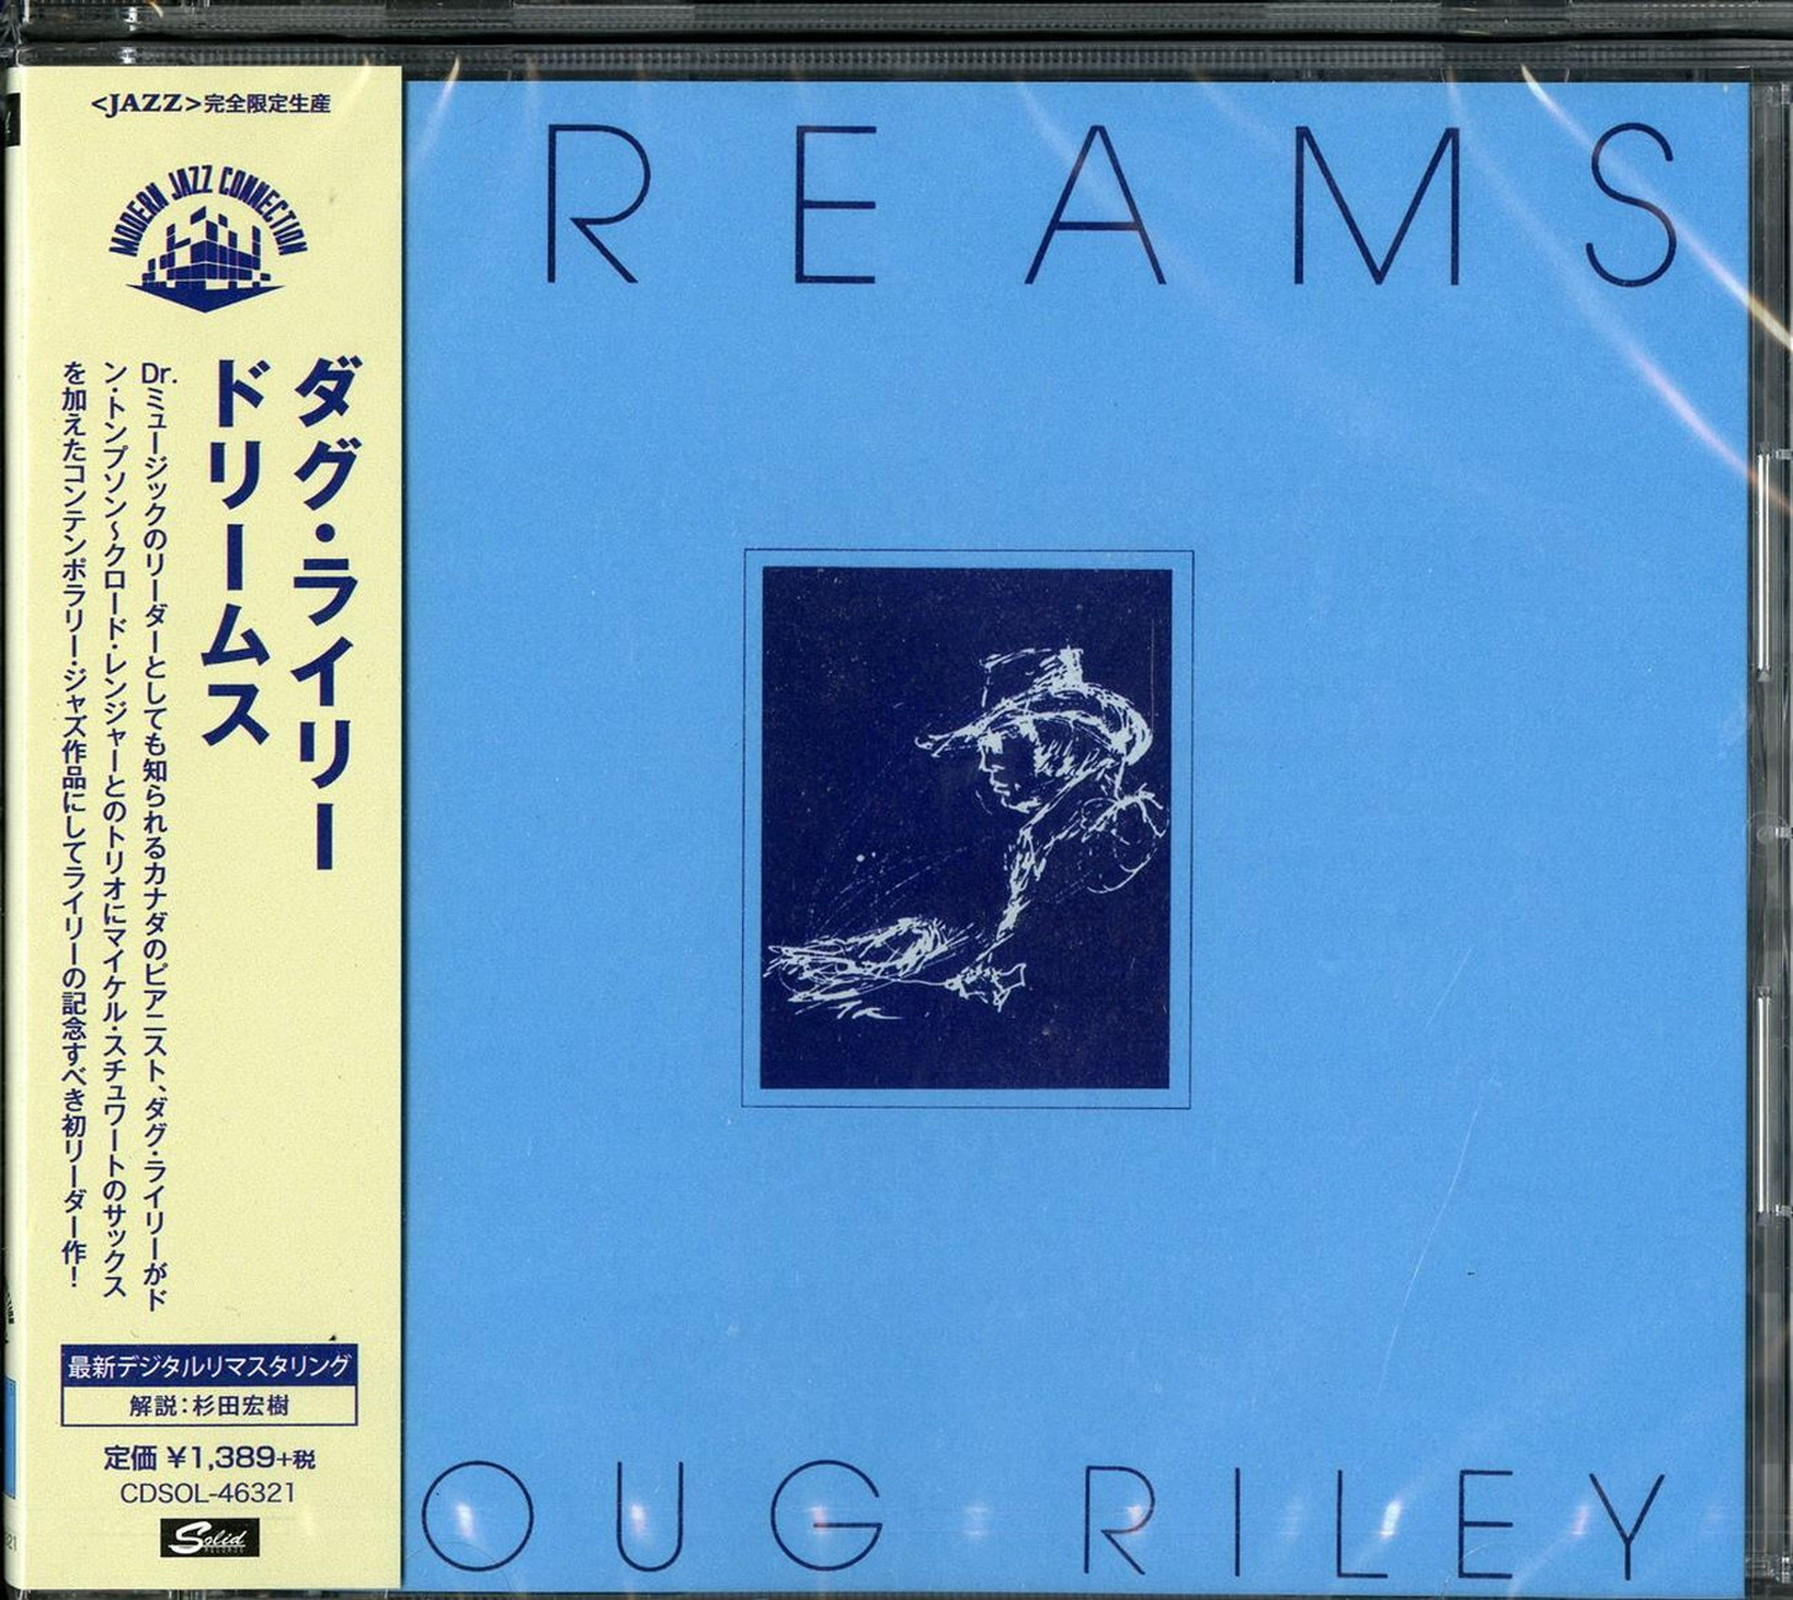 DOUG-RILEY-DREAMS-JAPAN-CD-Ltd-Ed-C65